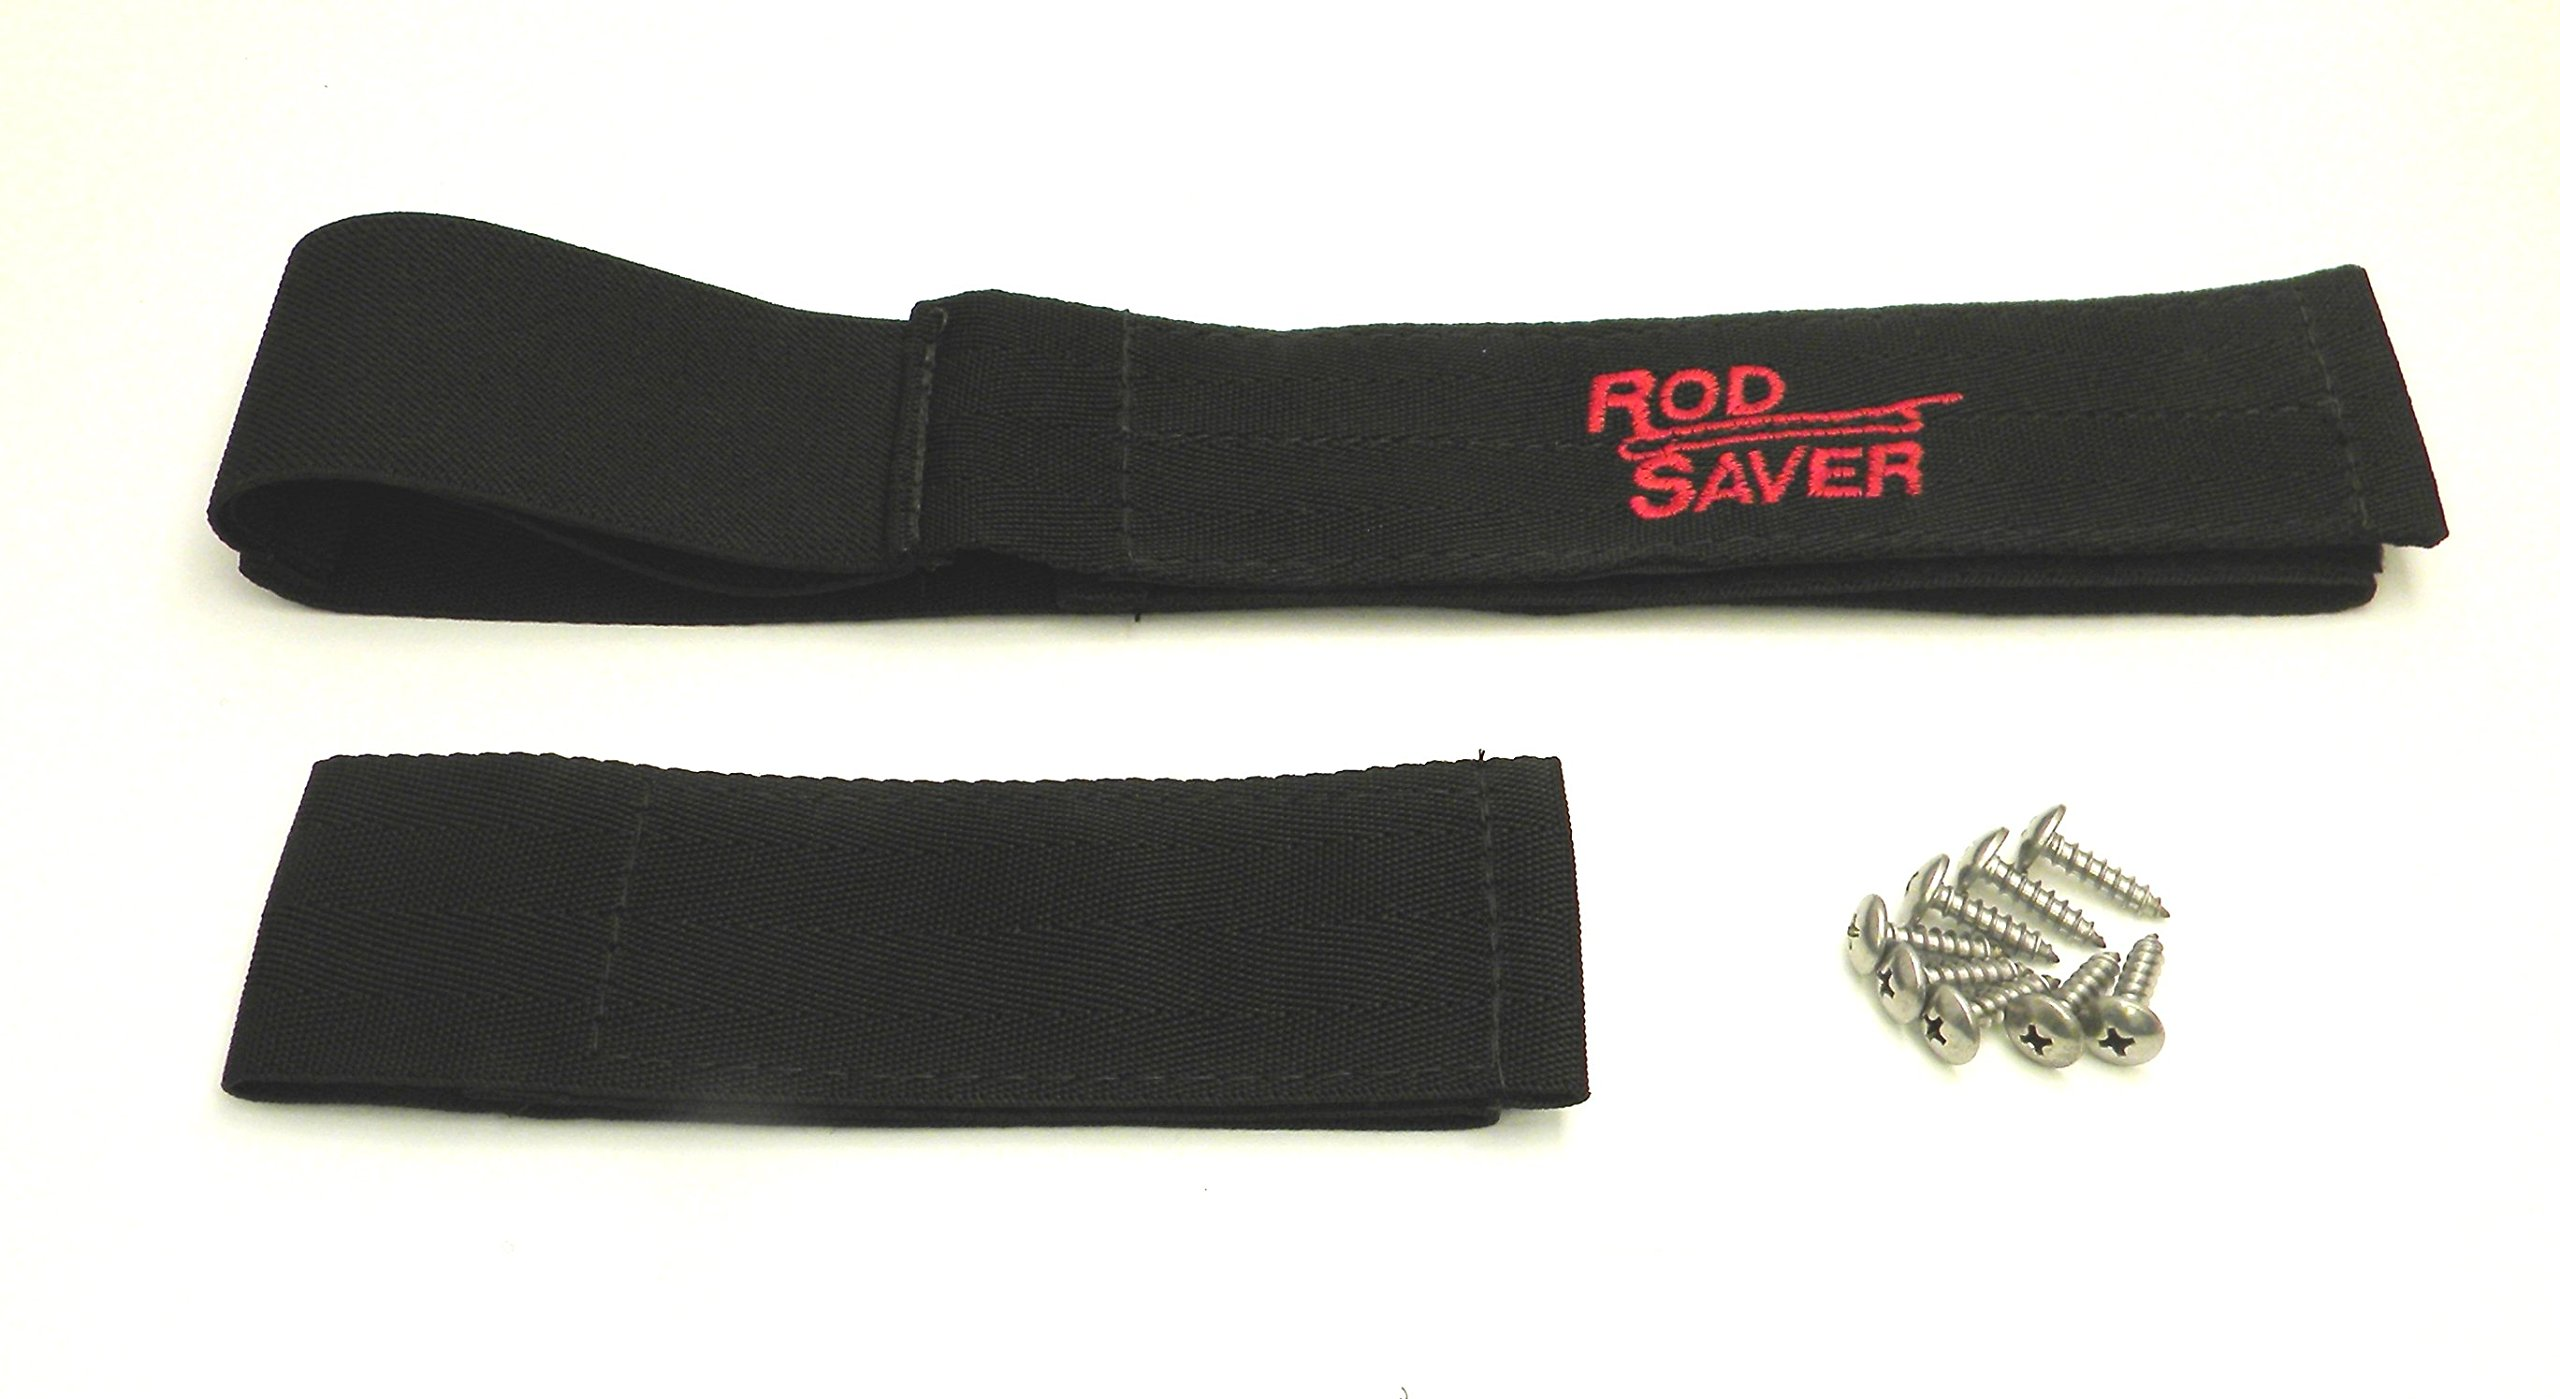 Rod Saver 12/6PM Pro Model Marine Stretch Set with 12-Inch and 6-Inch Straps, 2-Pieces, Black Finish